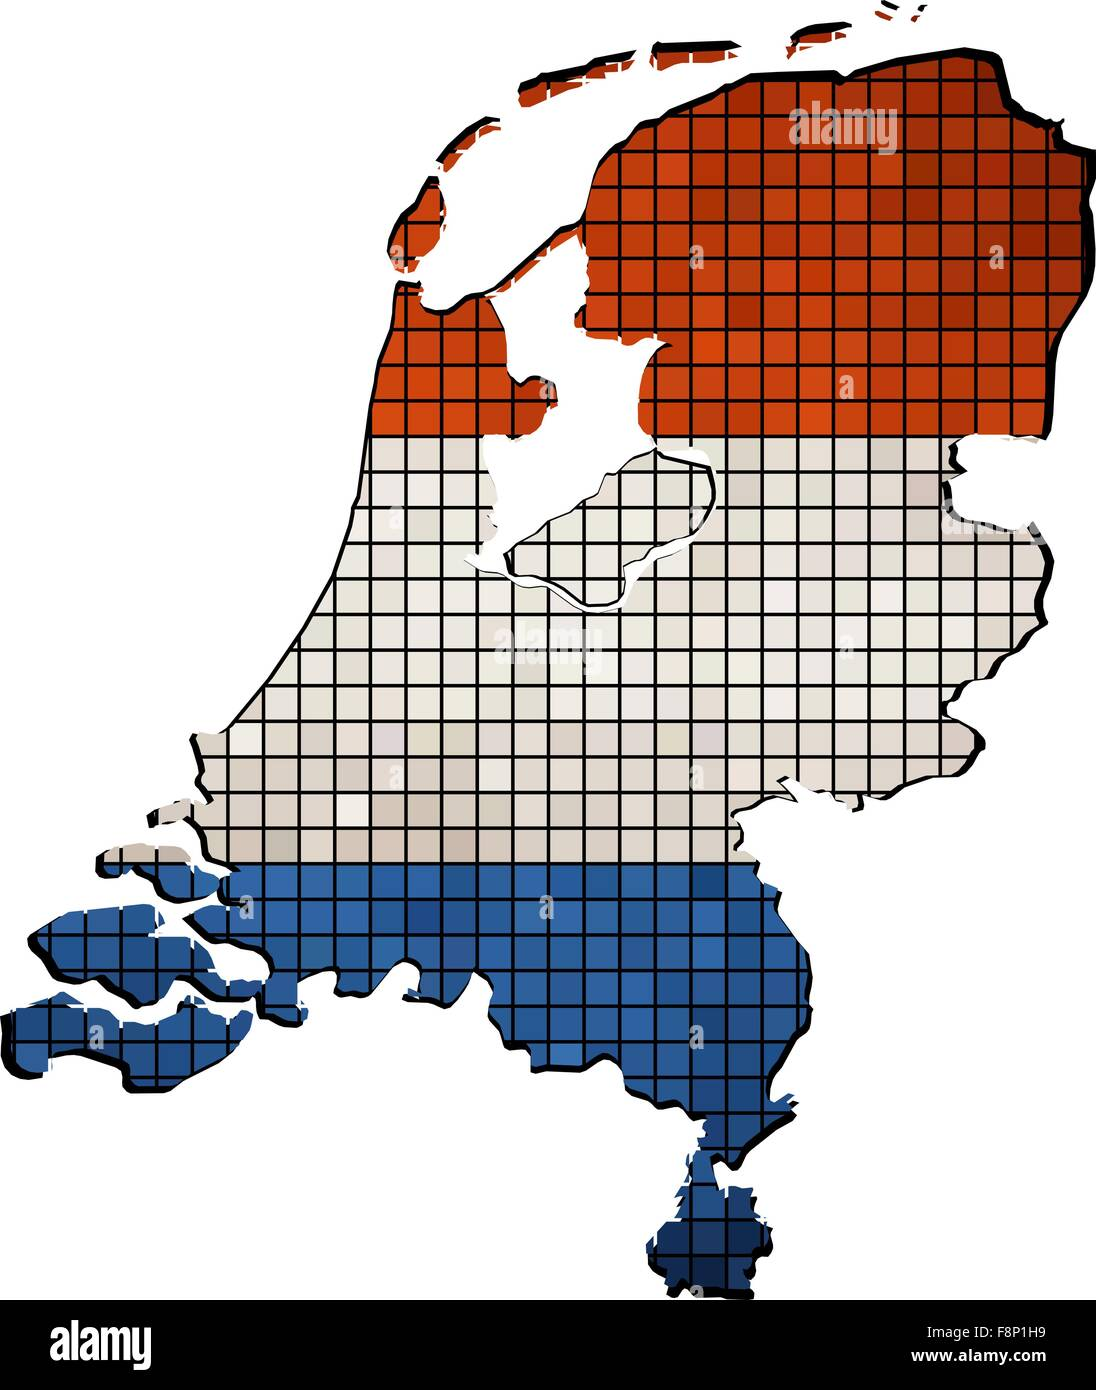 Netherlands map with flag inside - Stock Vector